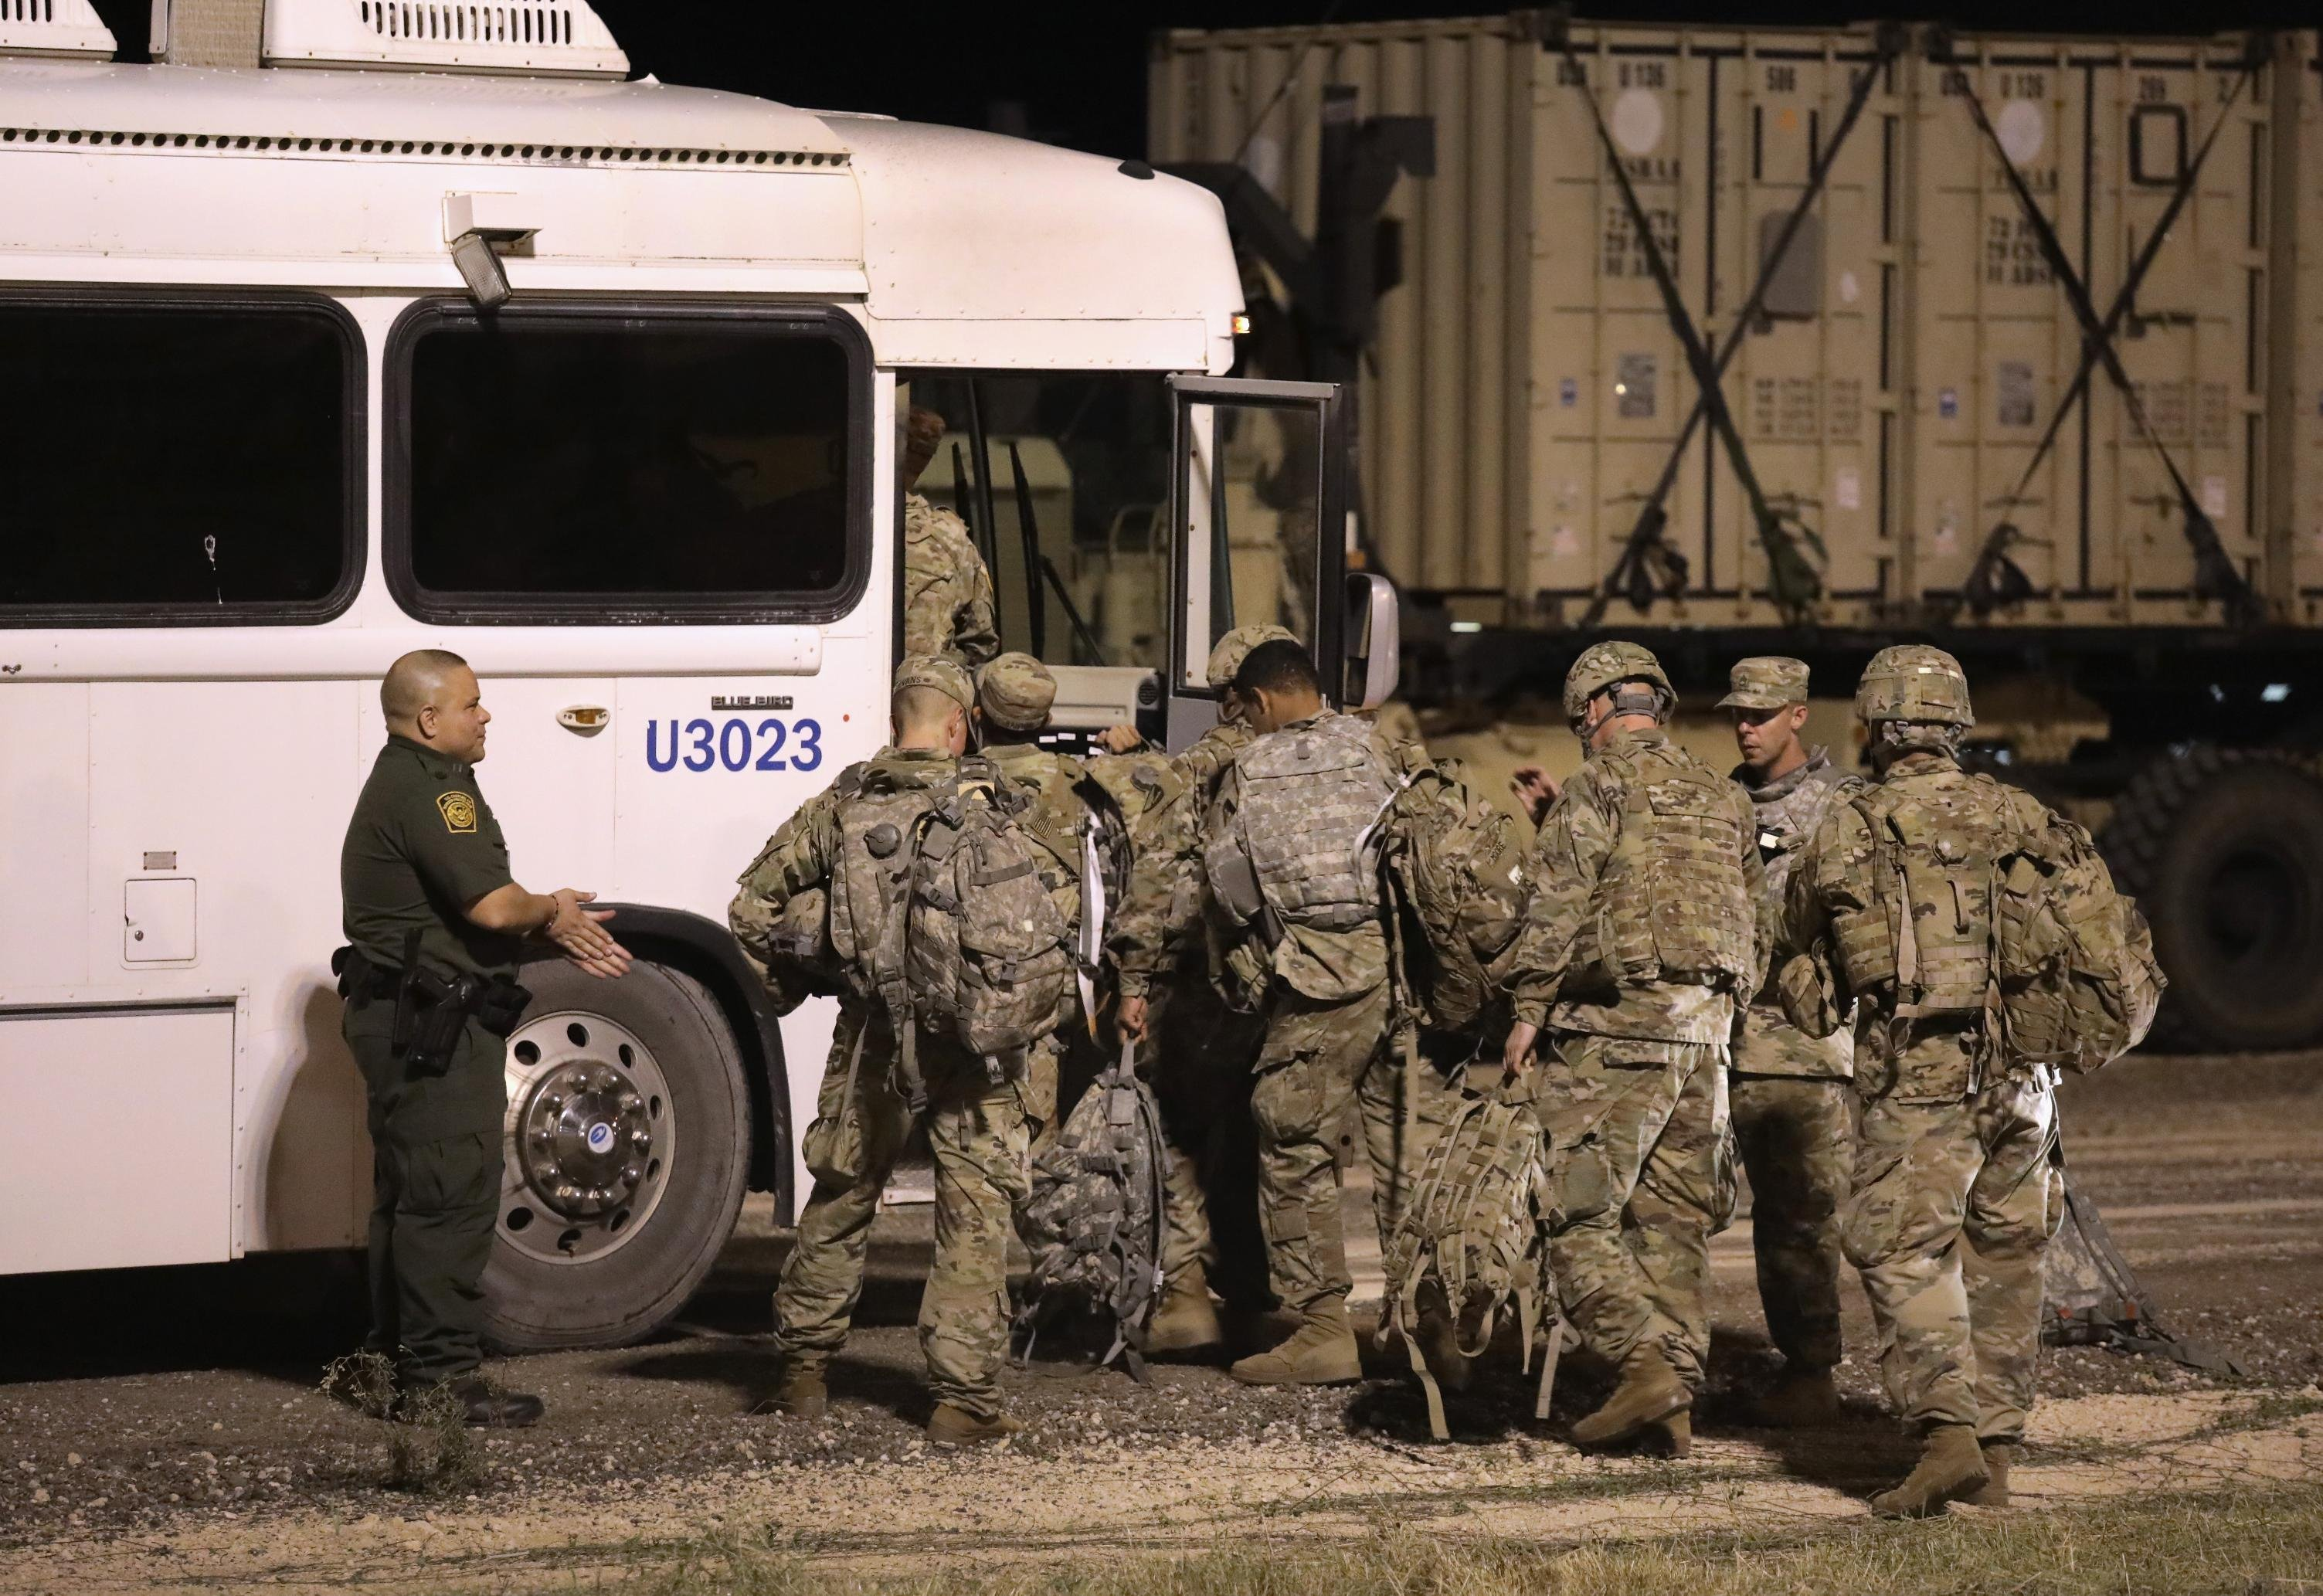 Troops on the southern border carrying out 'welfare checks' to help overwhelmed border agents